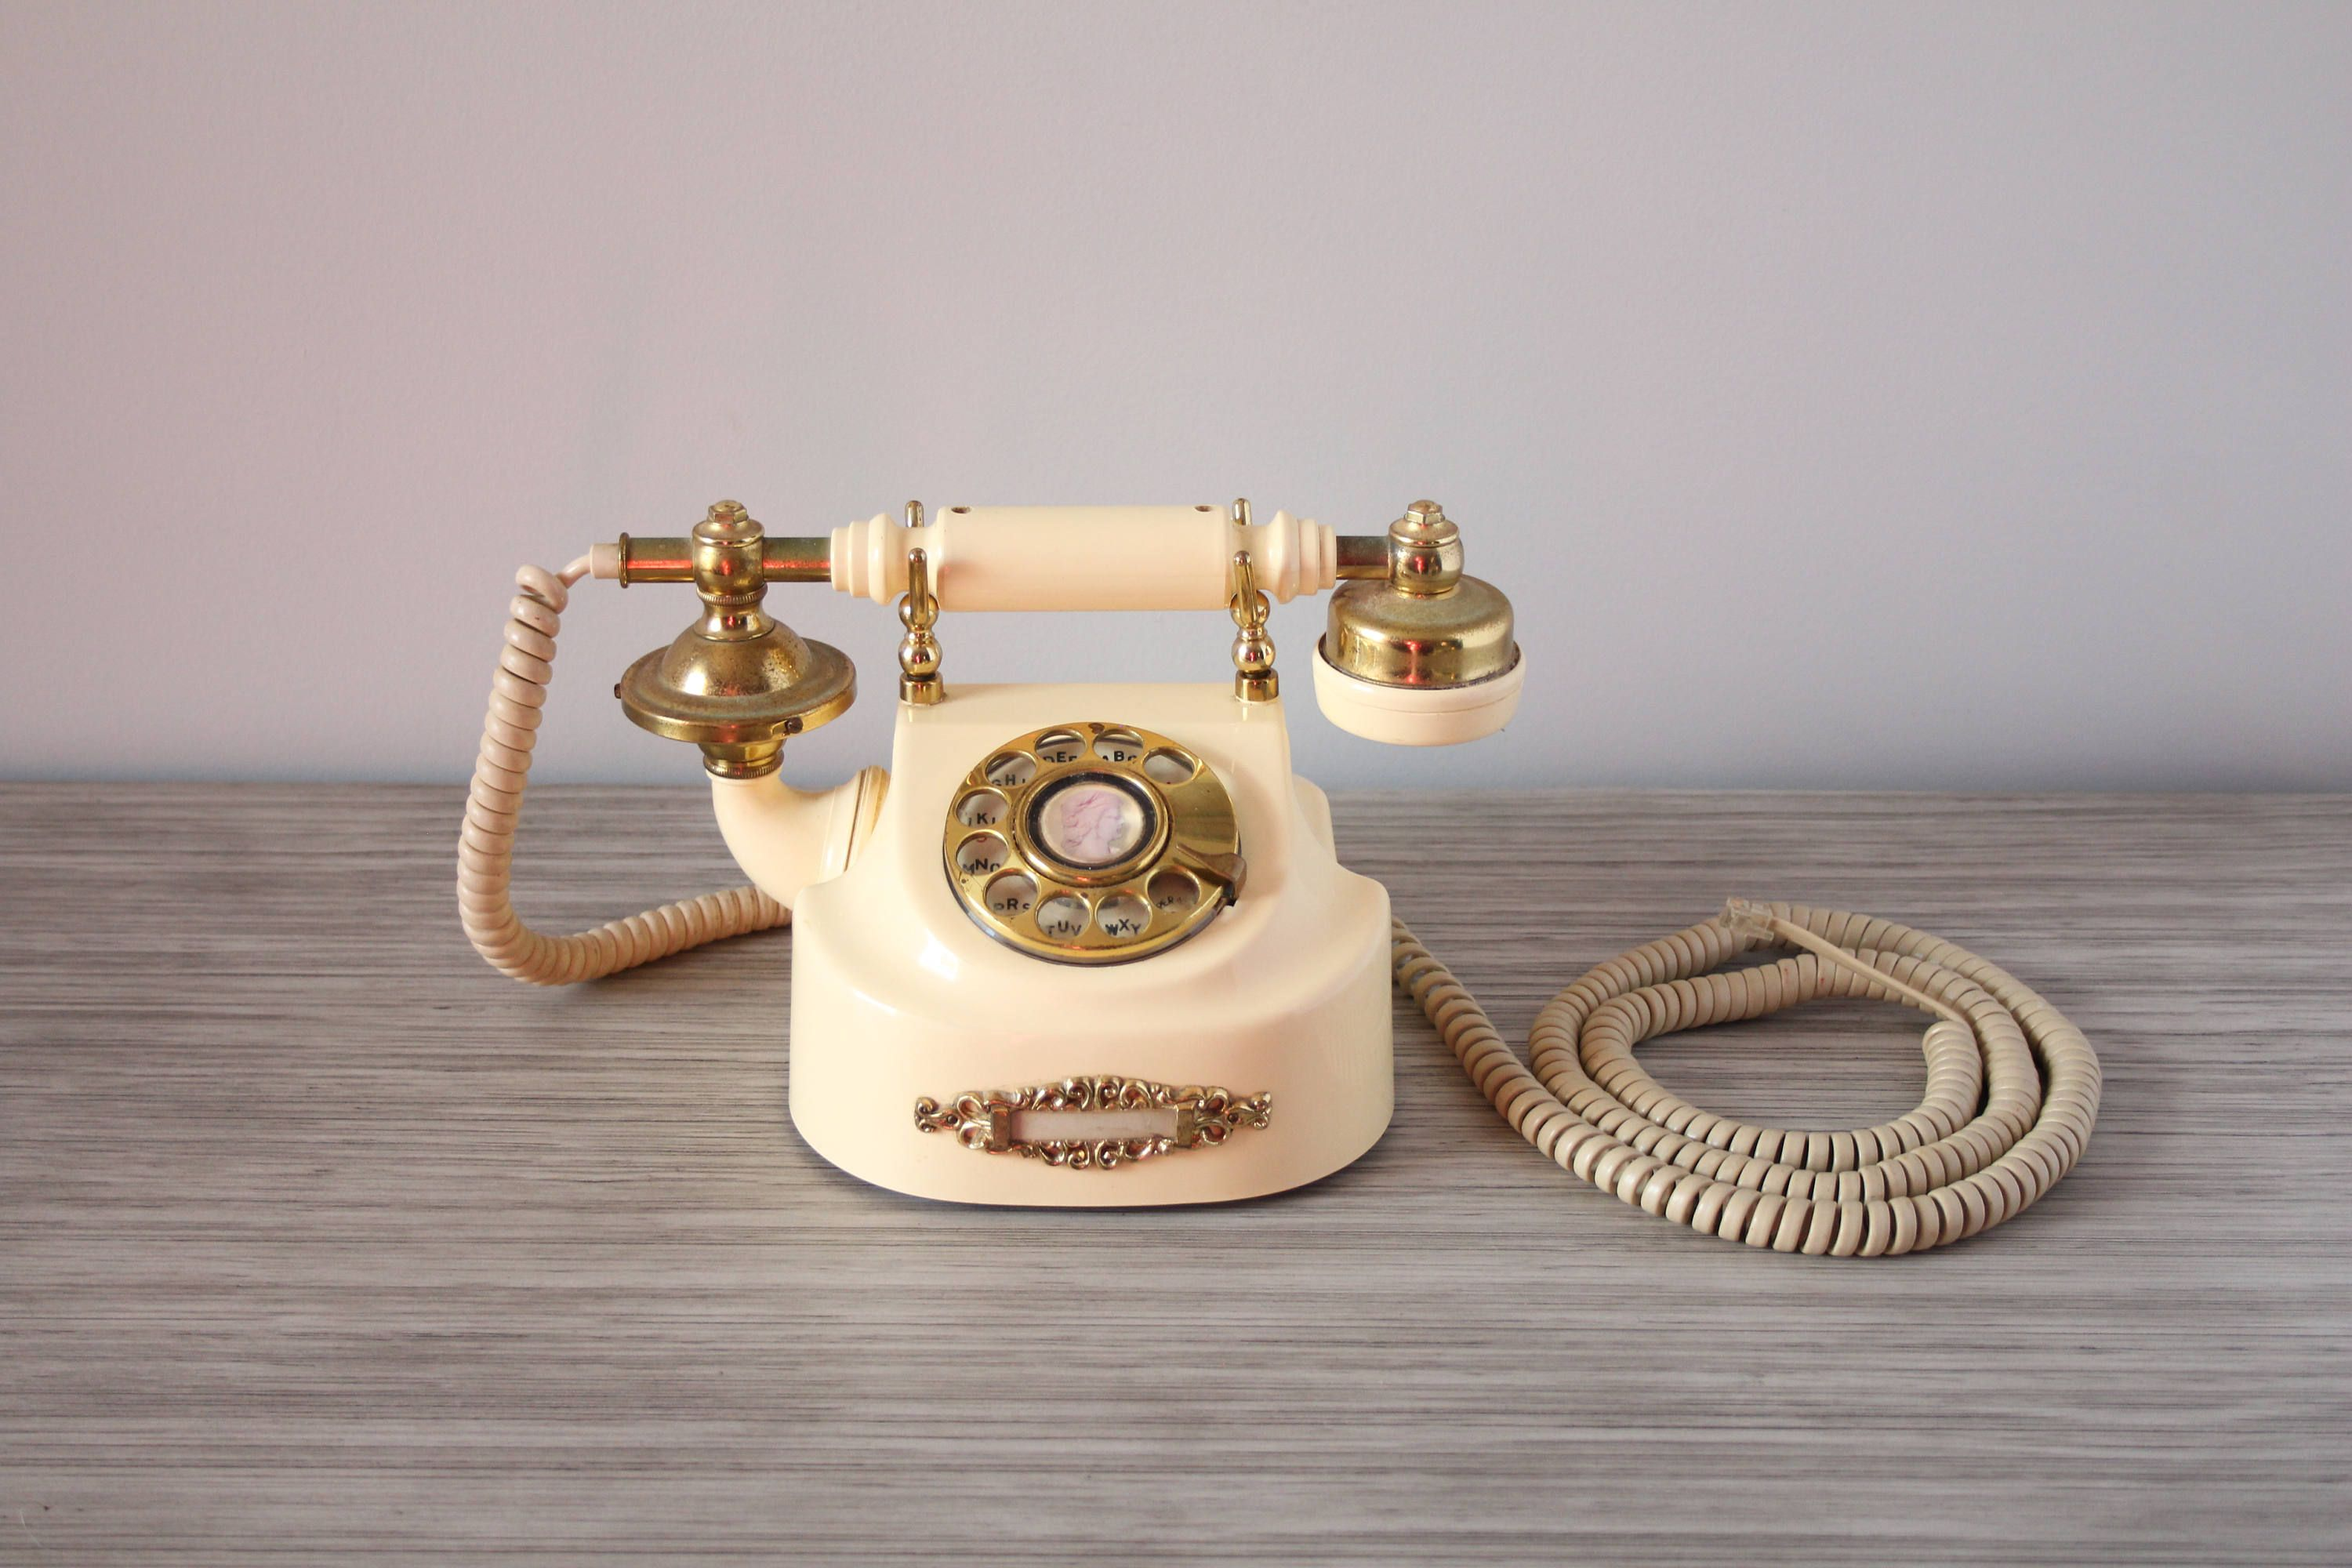 hight resolution of vintage french style working rotary phone solid brass hardware ivory plastic body new york telephone company photography store display prop by